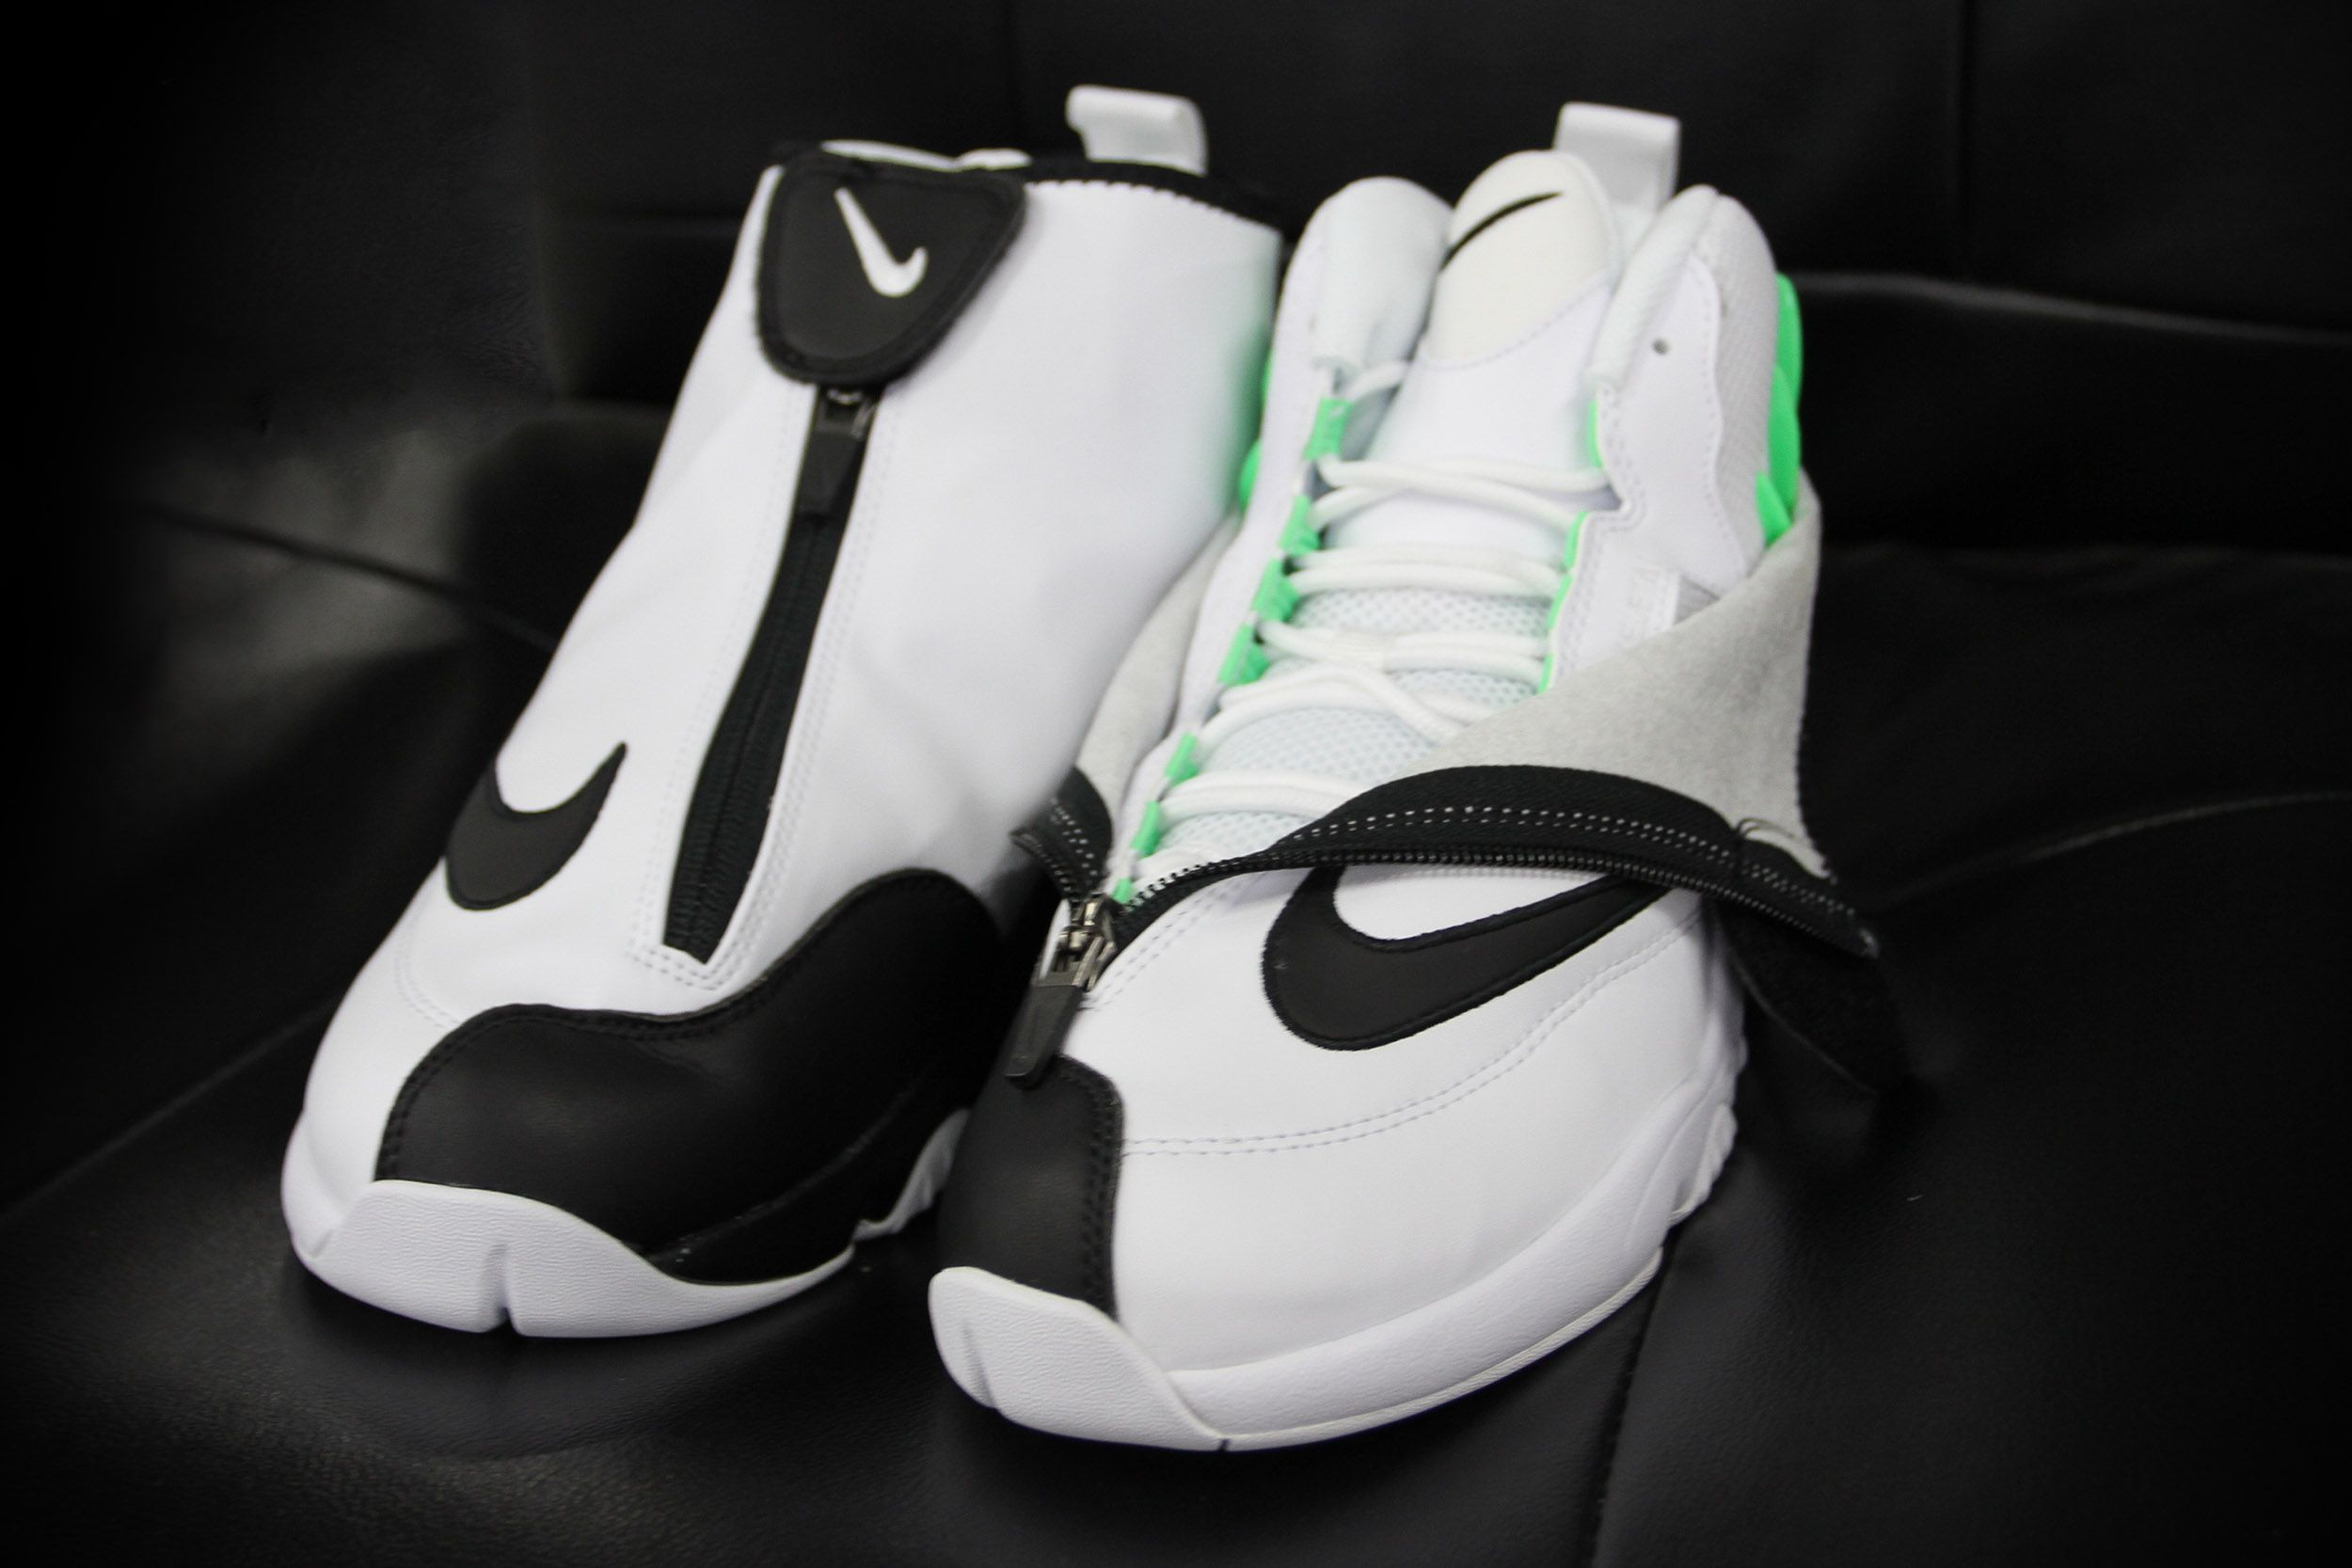 ad0397aa962b6 The Nike Zoom Flight The Glove in  White Black-Poison Green  drops Friday